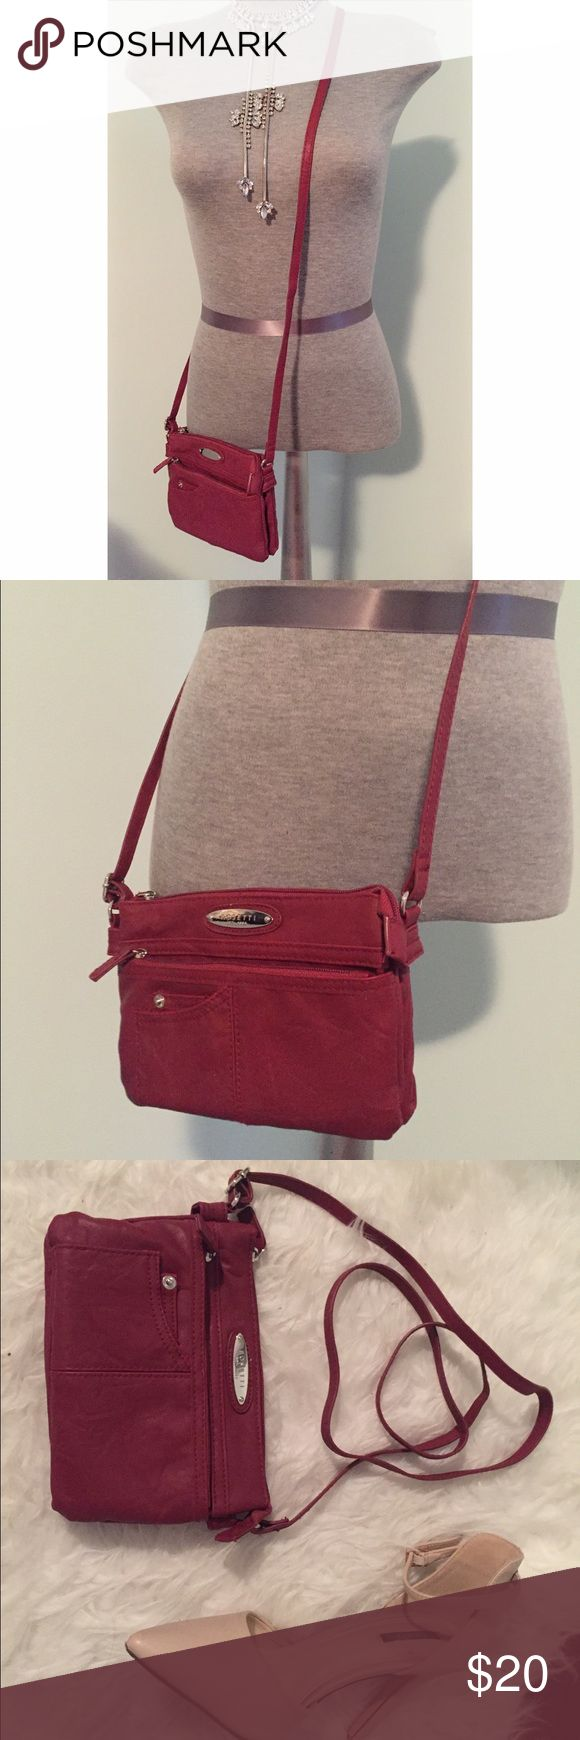 Final Flash⚡️Crossbody Bag👜 Brand: ROSETTI. Brand new. Never used. 🚫NO TRADES🚫 jcpenney Bags Crossbody Bags